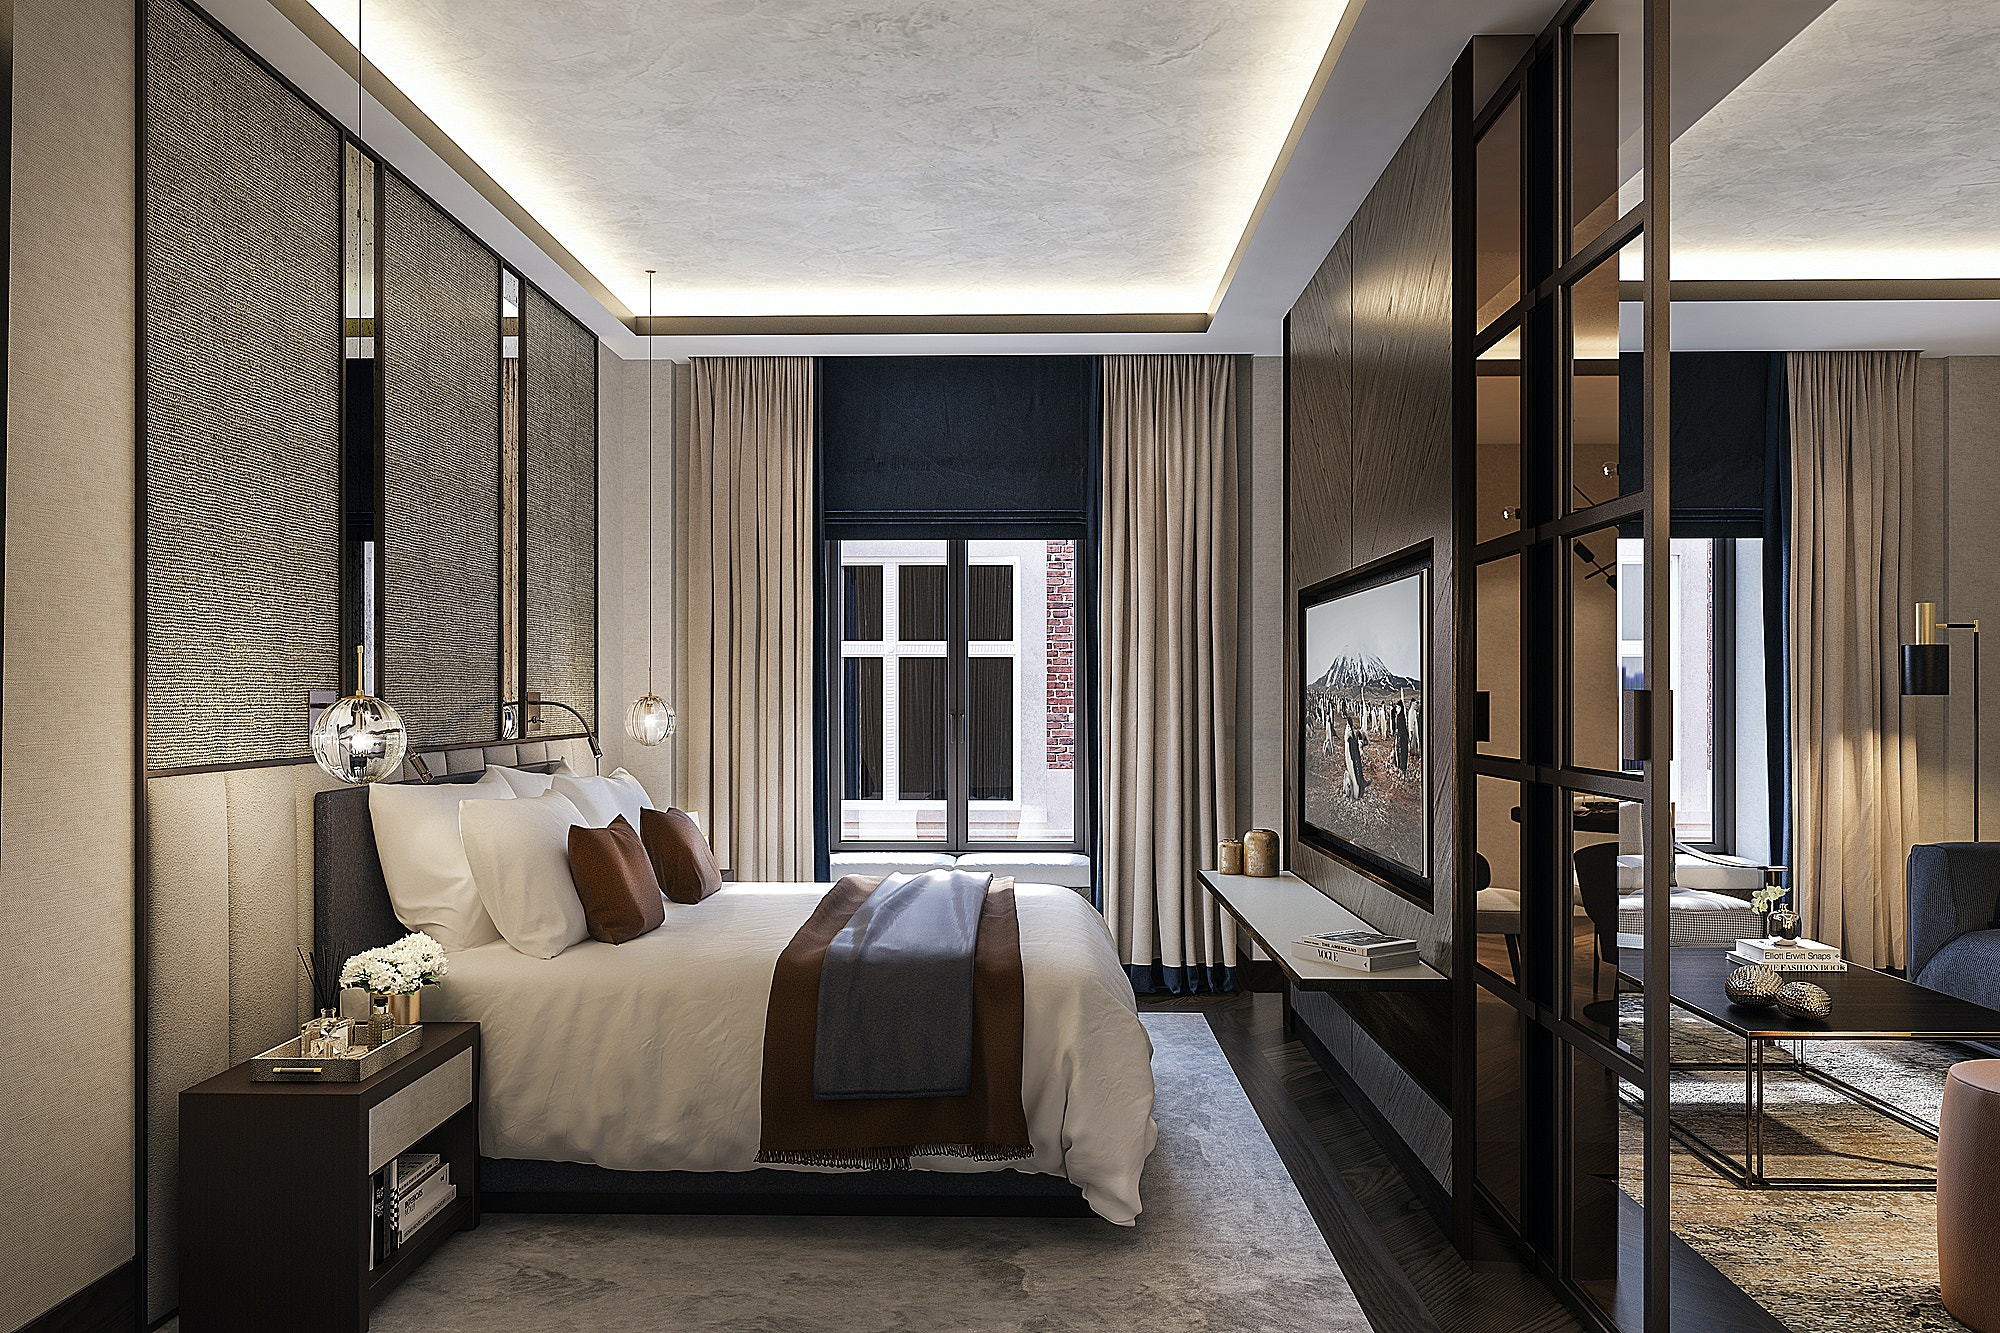 MAWD-Golden-Square-London-luxury-interior-bedroom